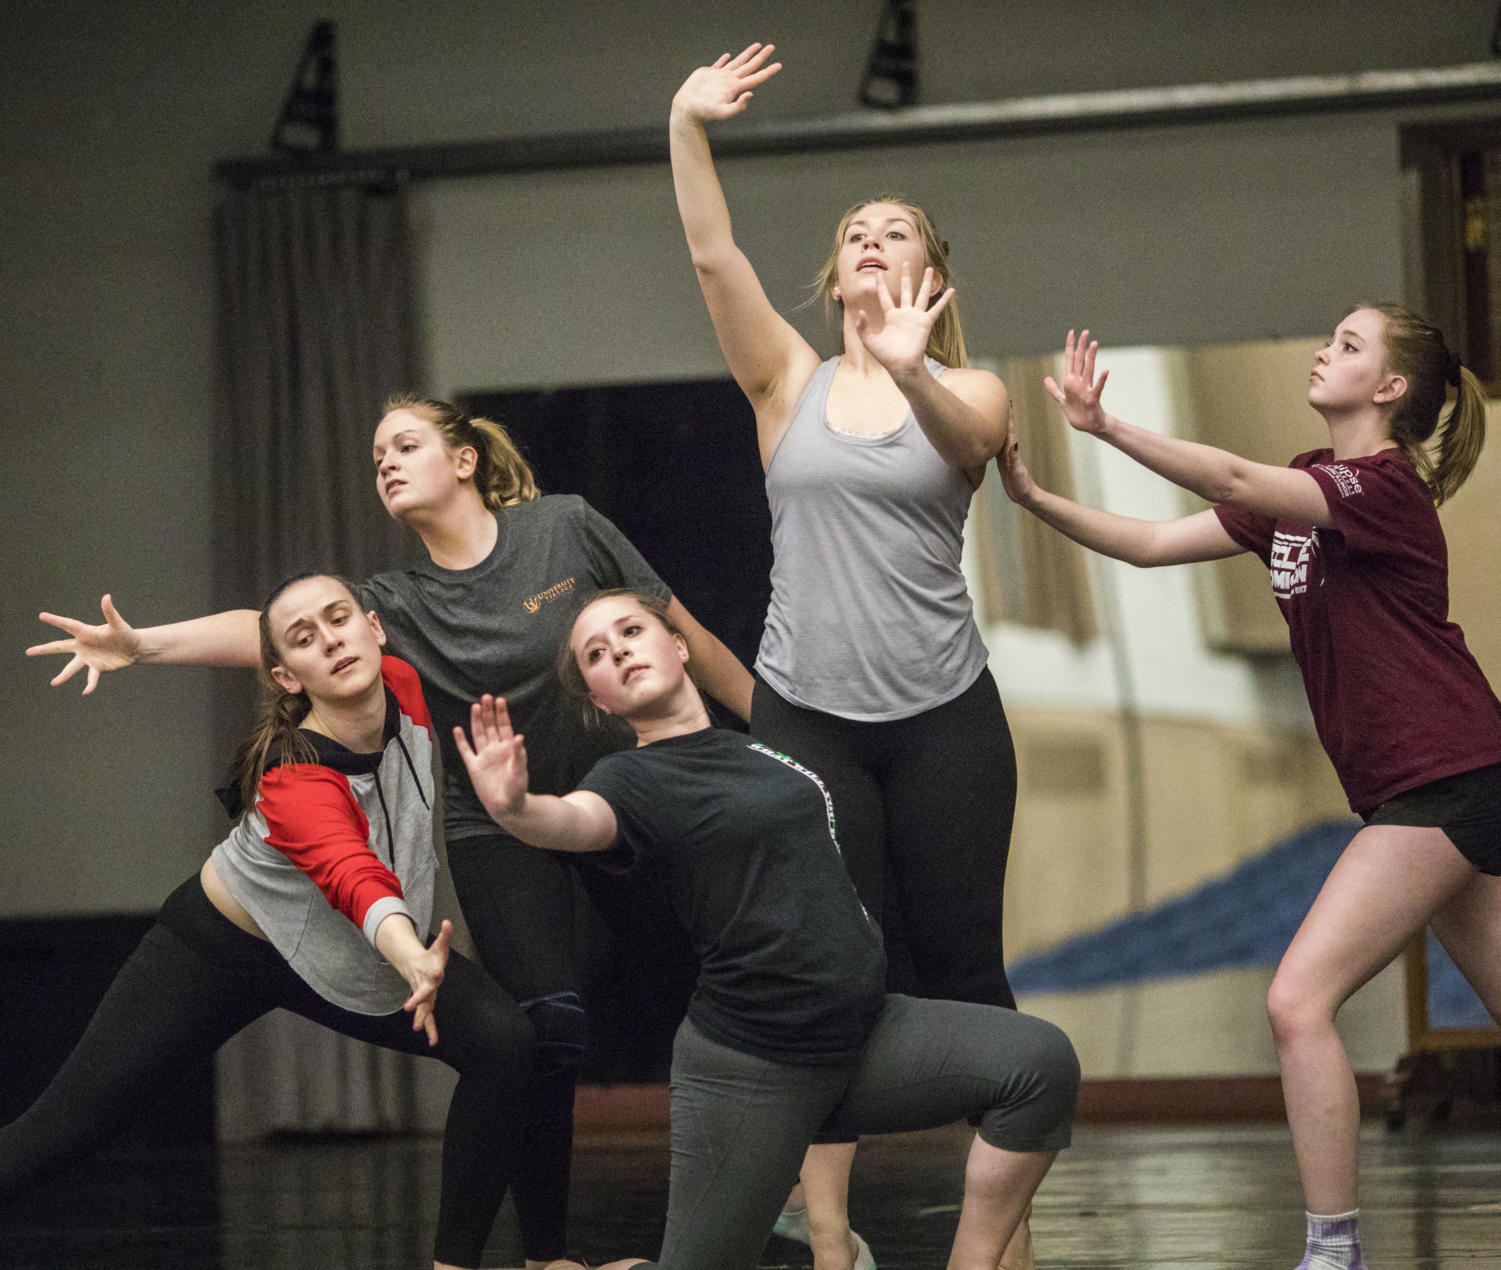 Members from the Southern Illinois Dance Company practice the start of a dance Thursday, April 13, 2018, during a rehearsal in preparation for the SIDC Spring Concert in the Furr Auditorium. (Corrin Hunt | @CorrinIHunt)